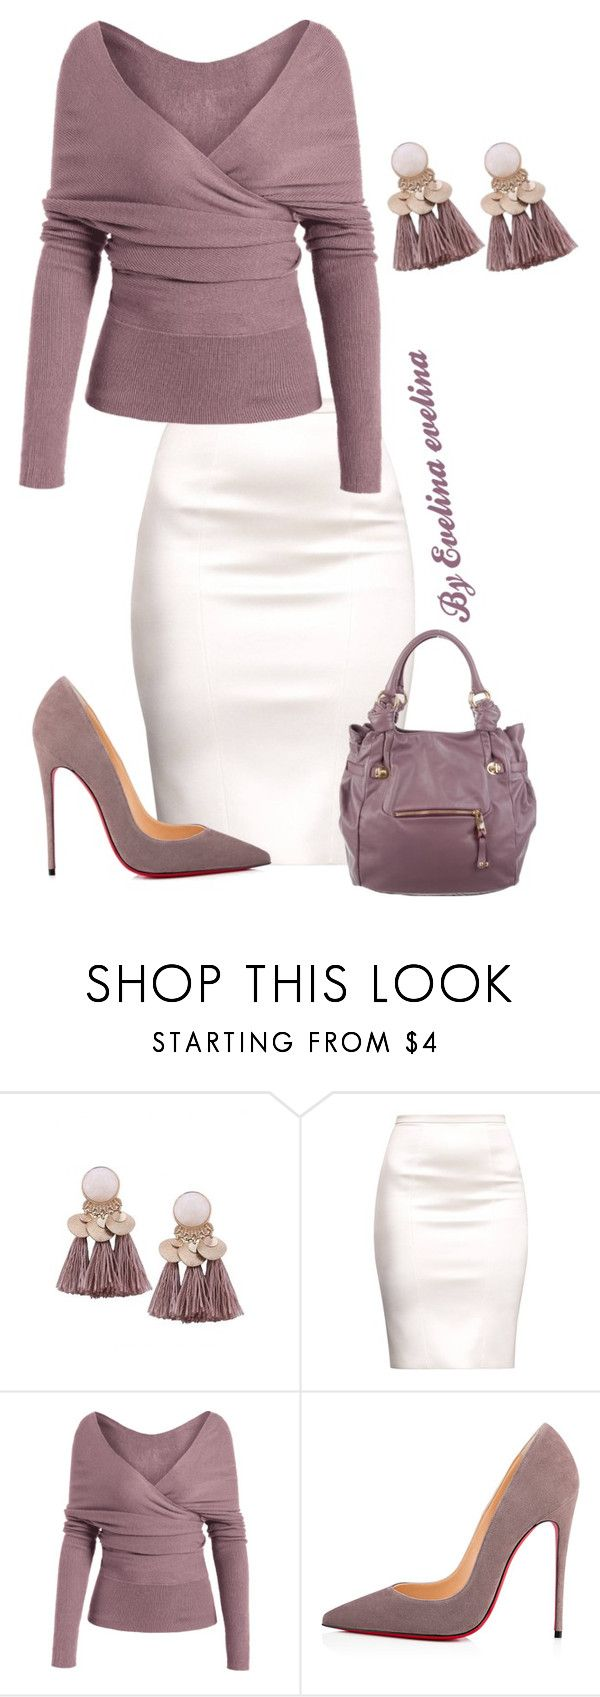 """EVE"" by evelina-er ❤ liked on Polyvore featuring Christian Louboutin and Marc Jacobs"